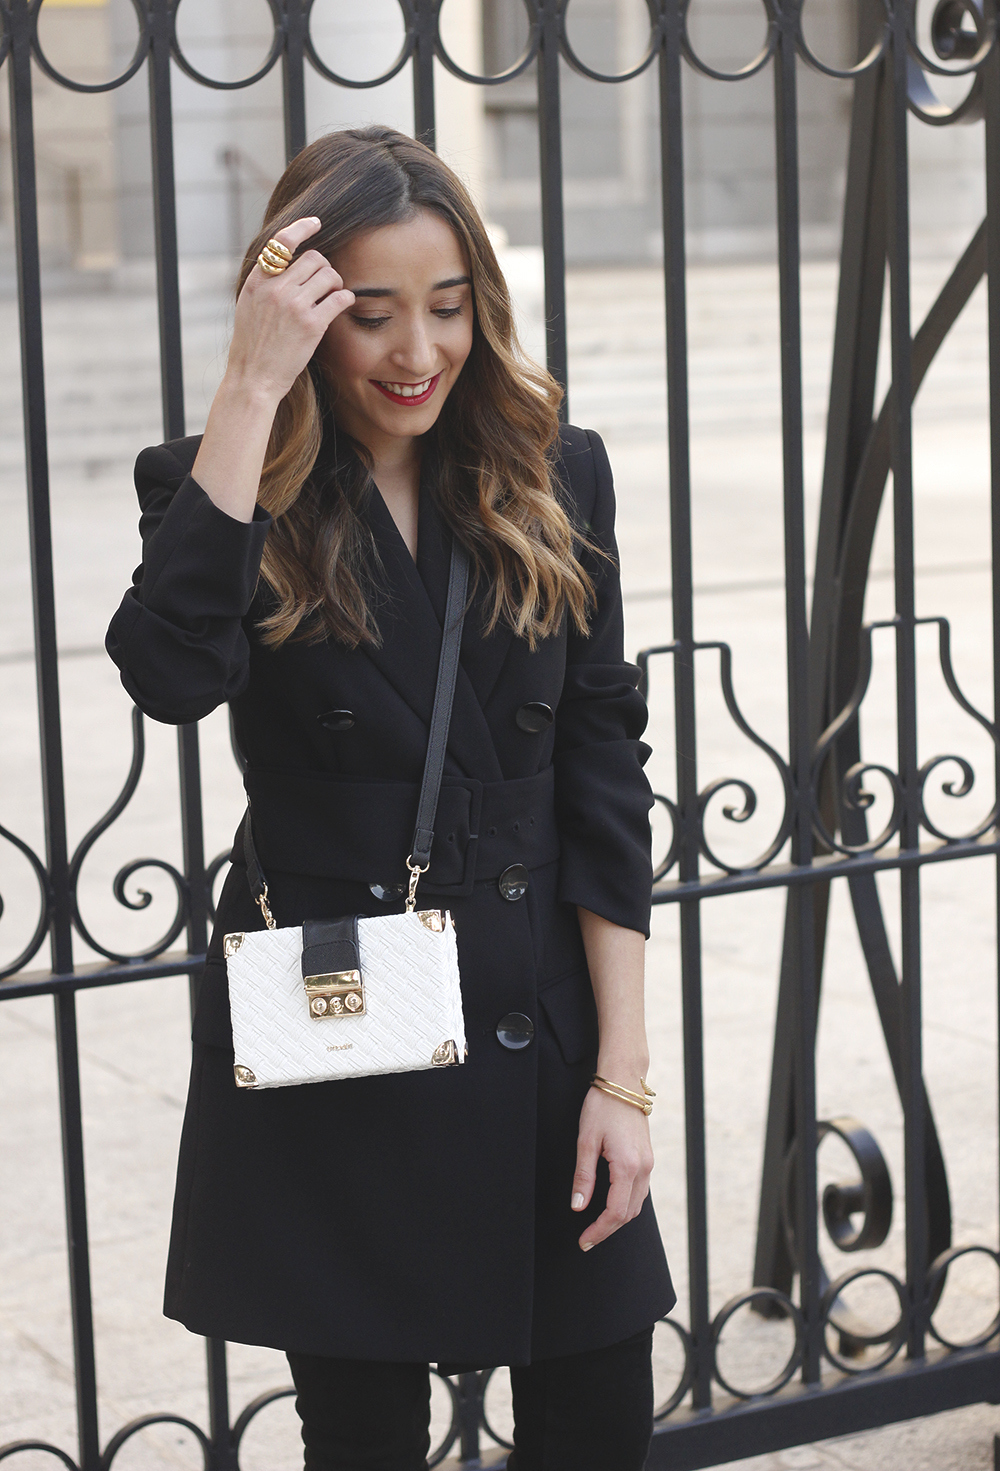 Black Blazer dress over the knee boots outfit uterqüe fashion style outfit autumn08